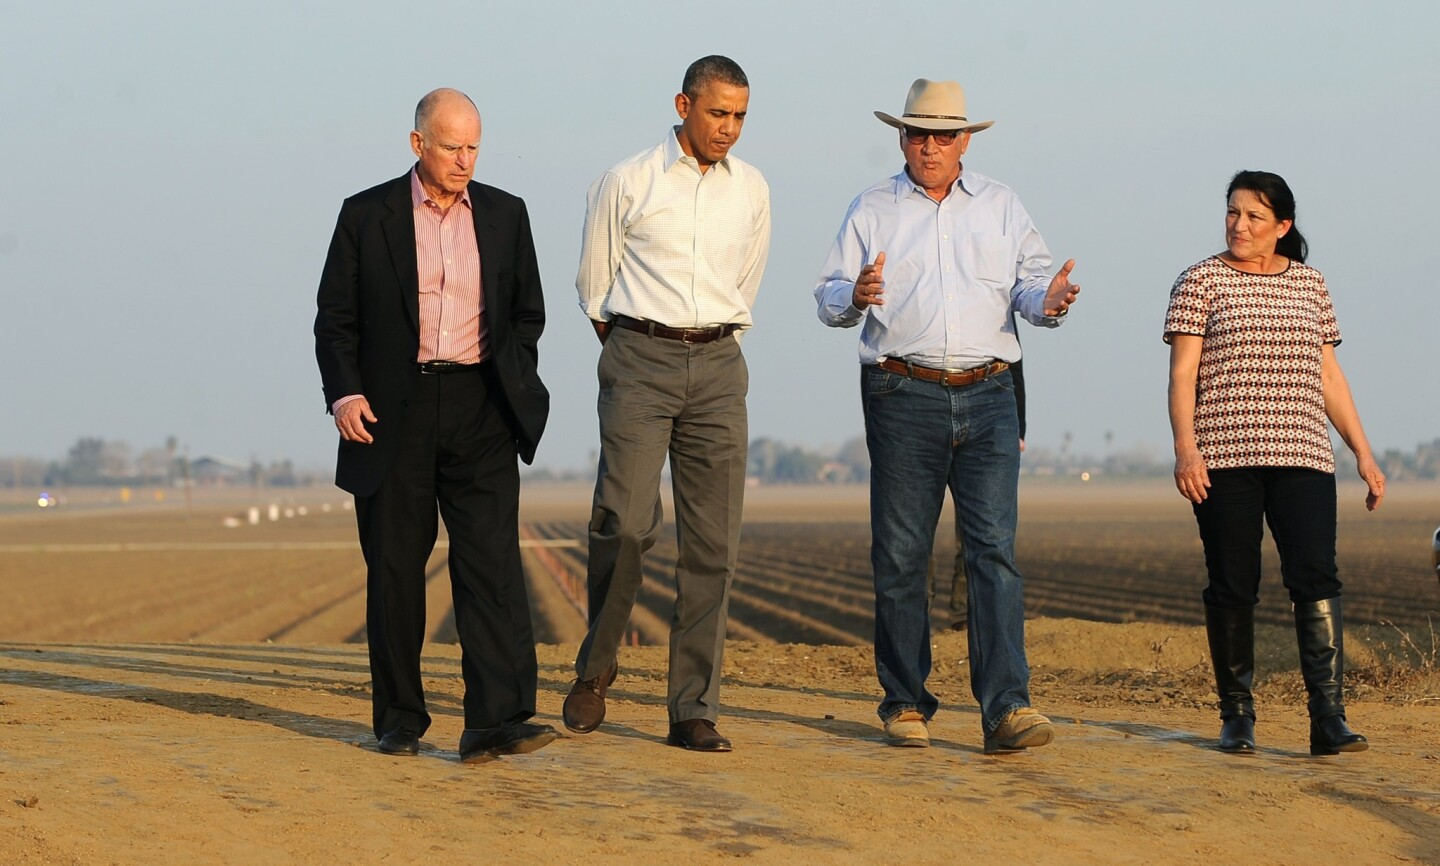 President Obama walks with Gov. Jerry Brown, left, and Joe and Maria Del Bosque on the Del Bosques' farm in Los Banos, Calif.